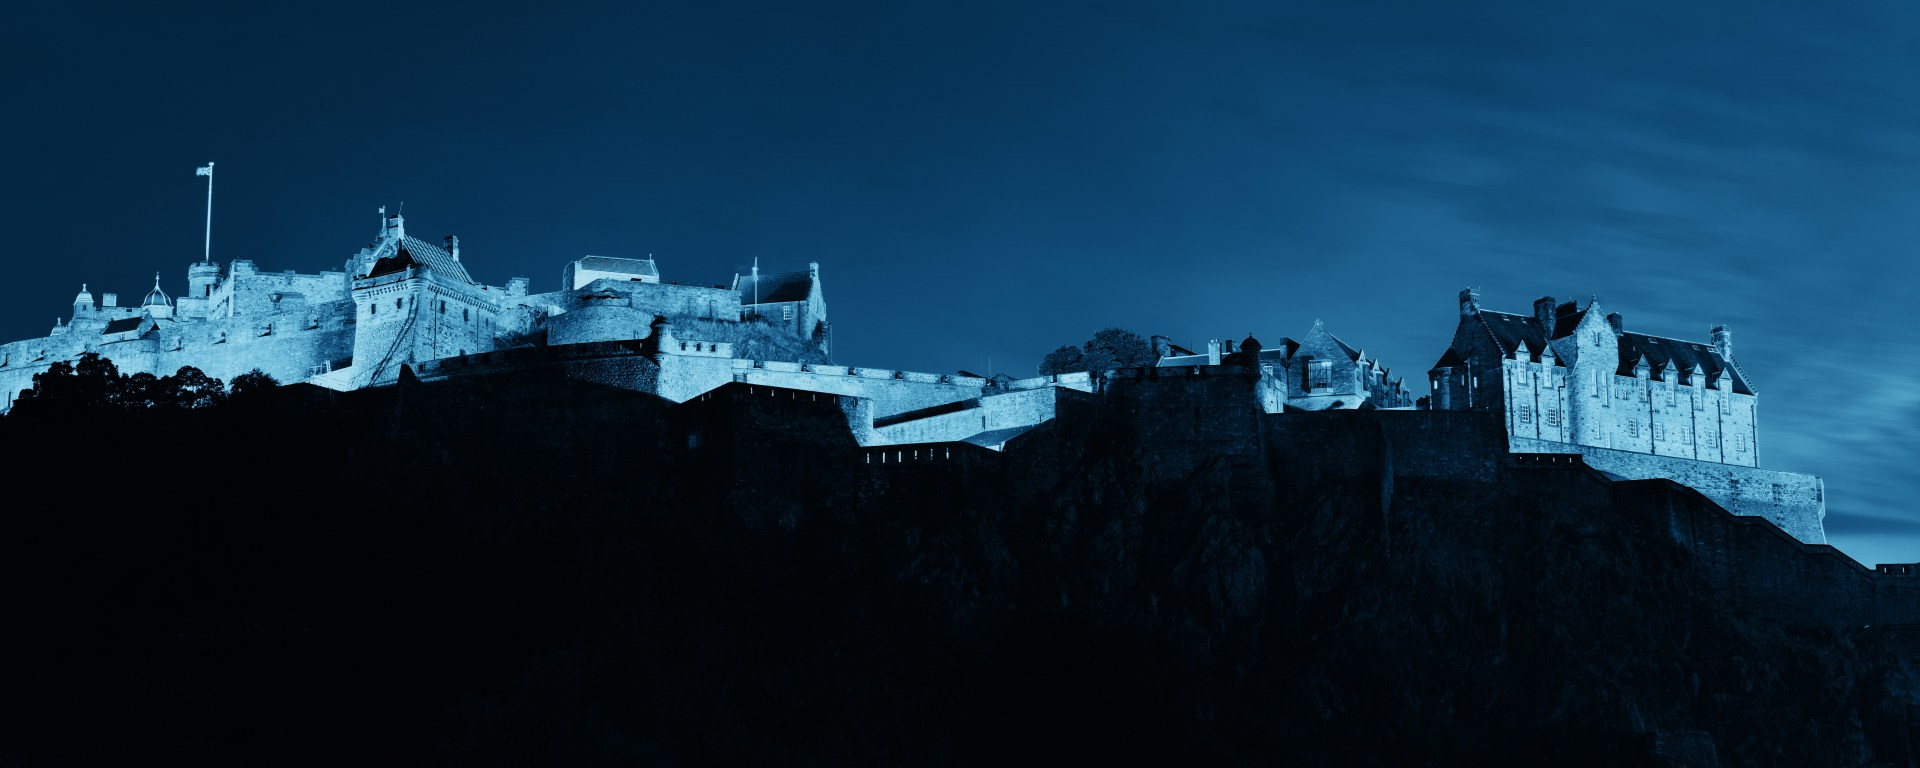 edited image of Edinburgh Castle